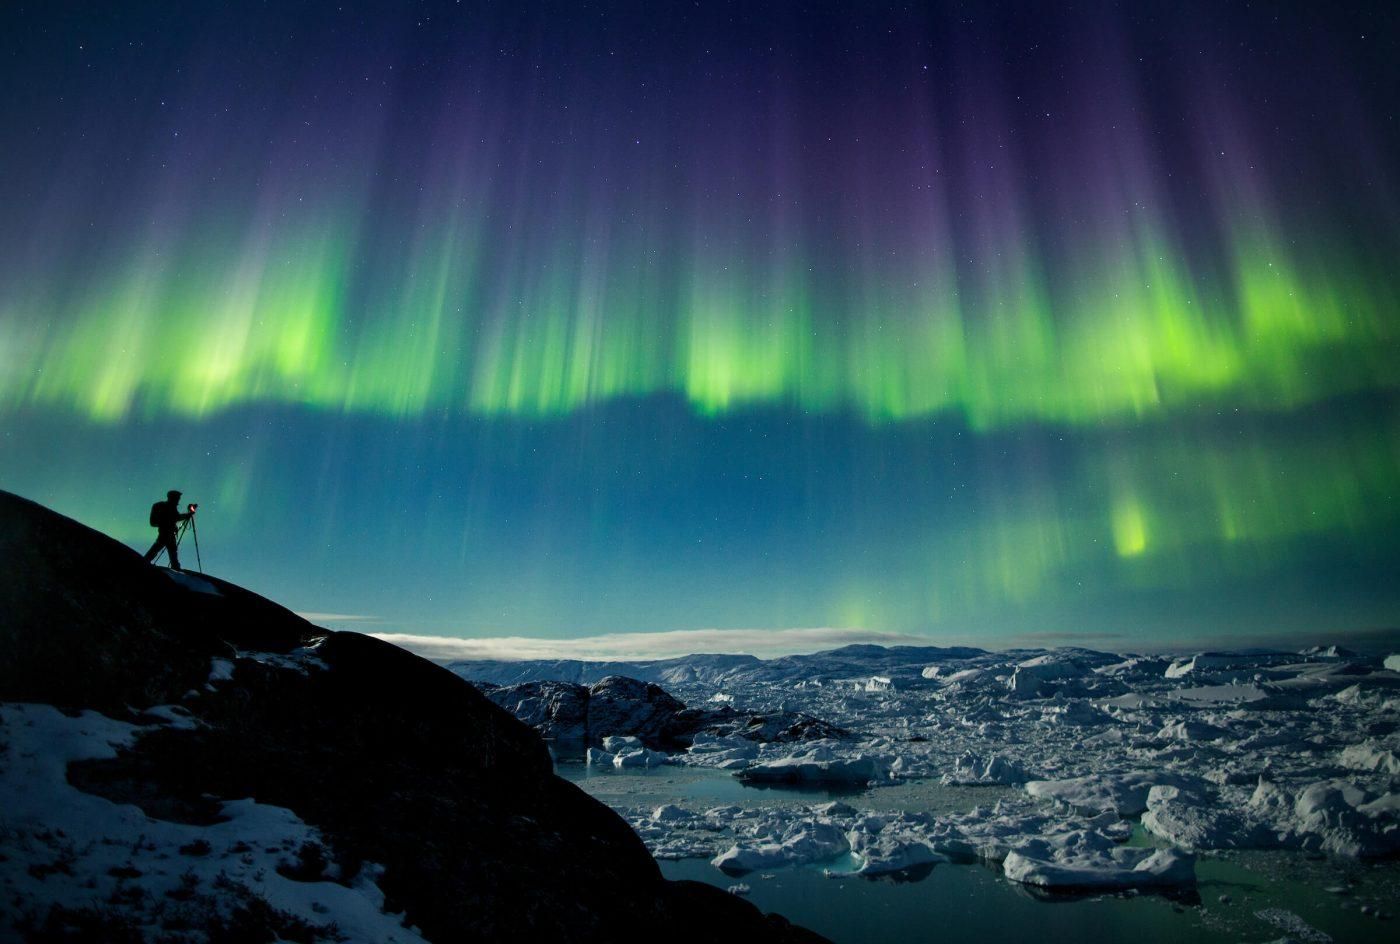 A photographer on a photo tour in North Greenland captures the perfect nighttime shot of northern lights, the starry night sky, and icebergs in the Ilulissat Icefjord. By Paul Zizka